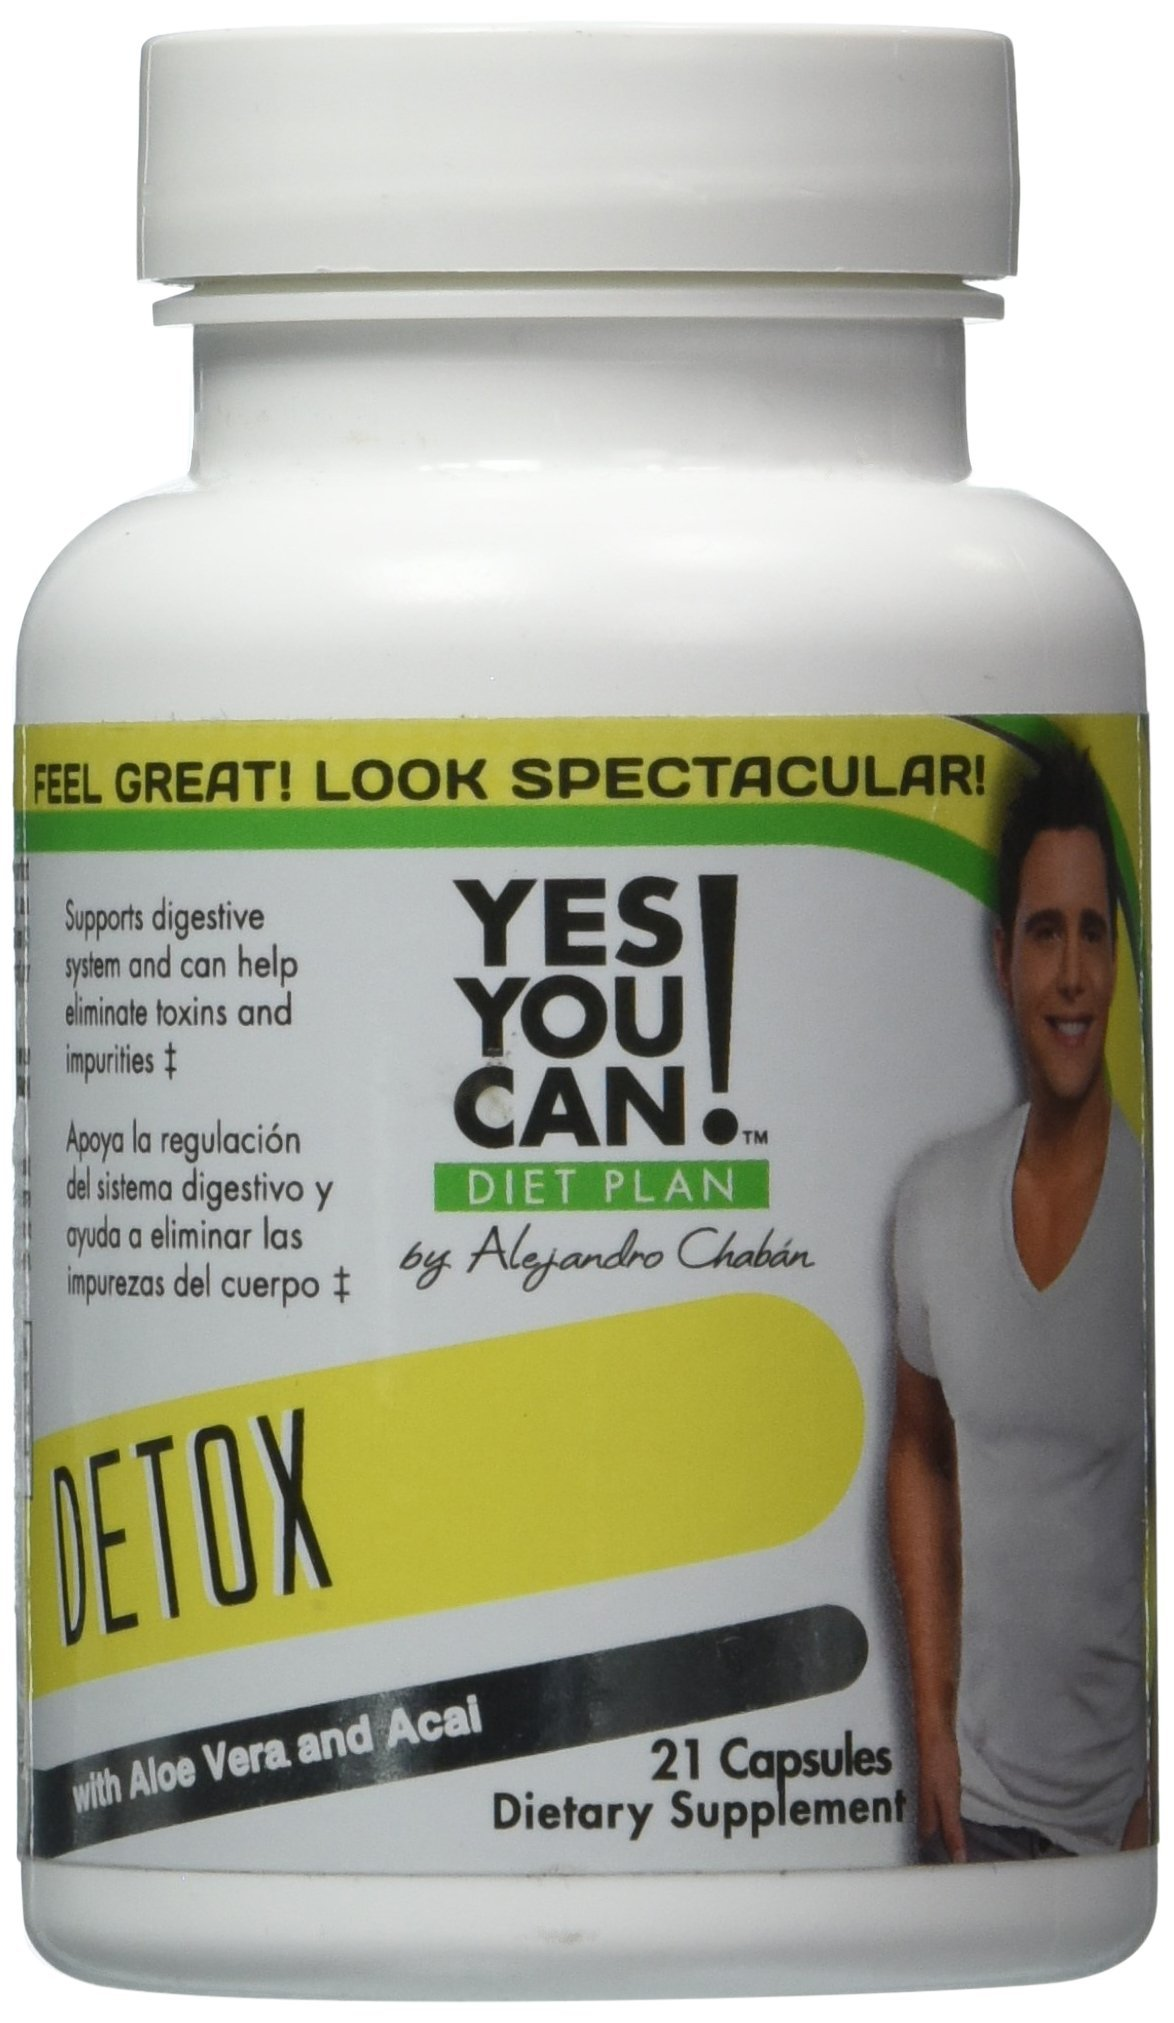 Yes You Can! Diet Plan 7 Day Quick Cleanse to Support Detox, Reach Ideal Weigh & Increase Energy Levels - Desintoxica tu Cuerpo y Ayuda a Adelgazar y Bajar de Peso - 21 Capsules